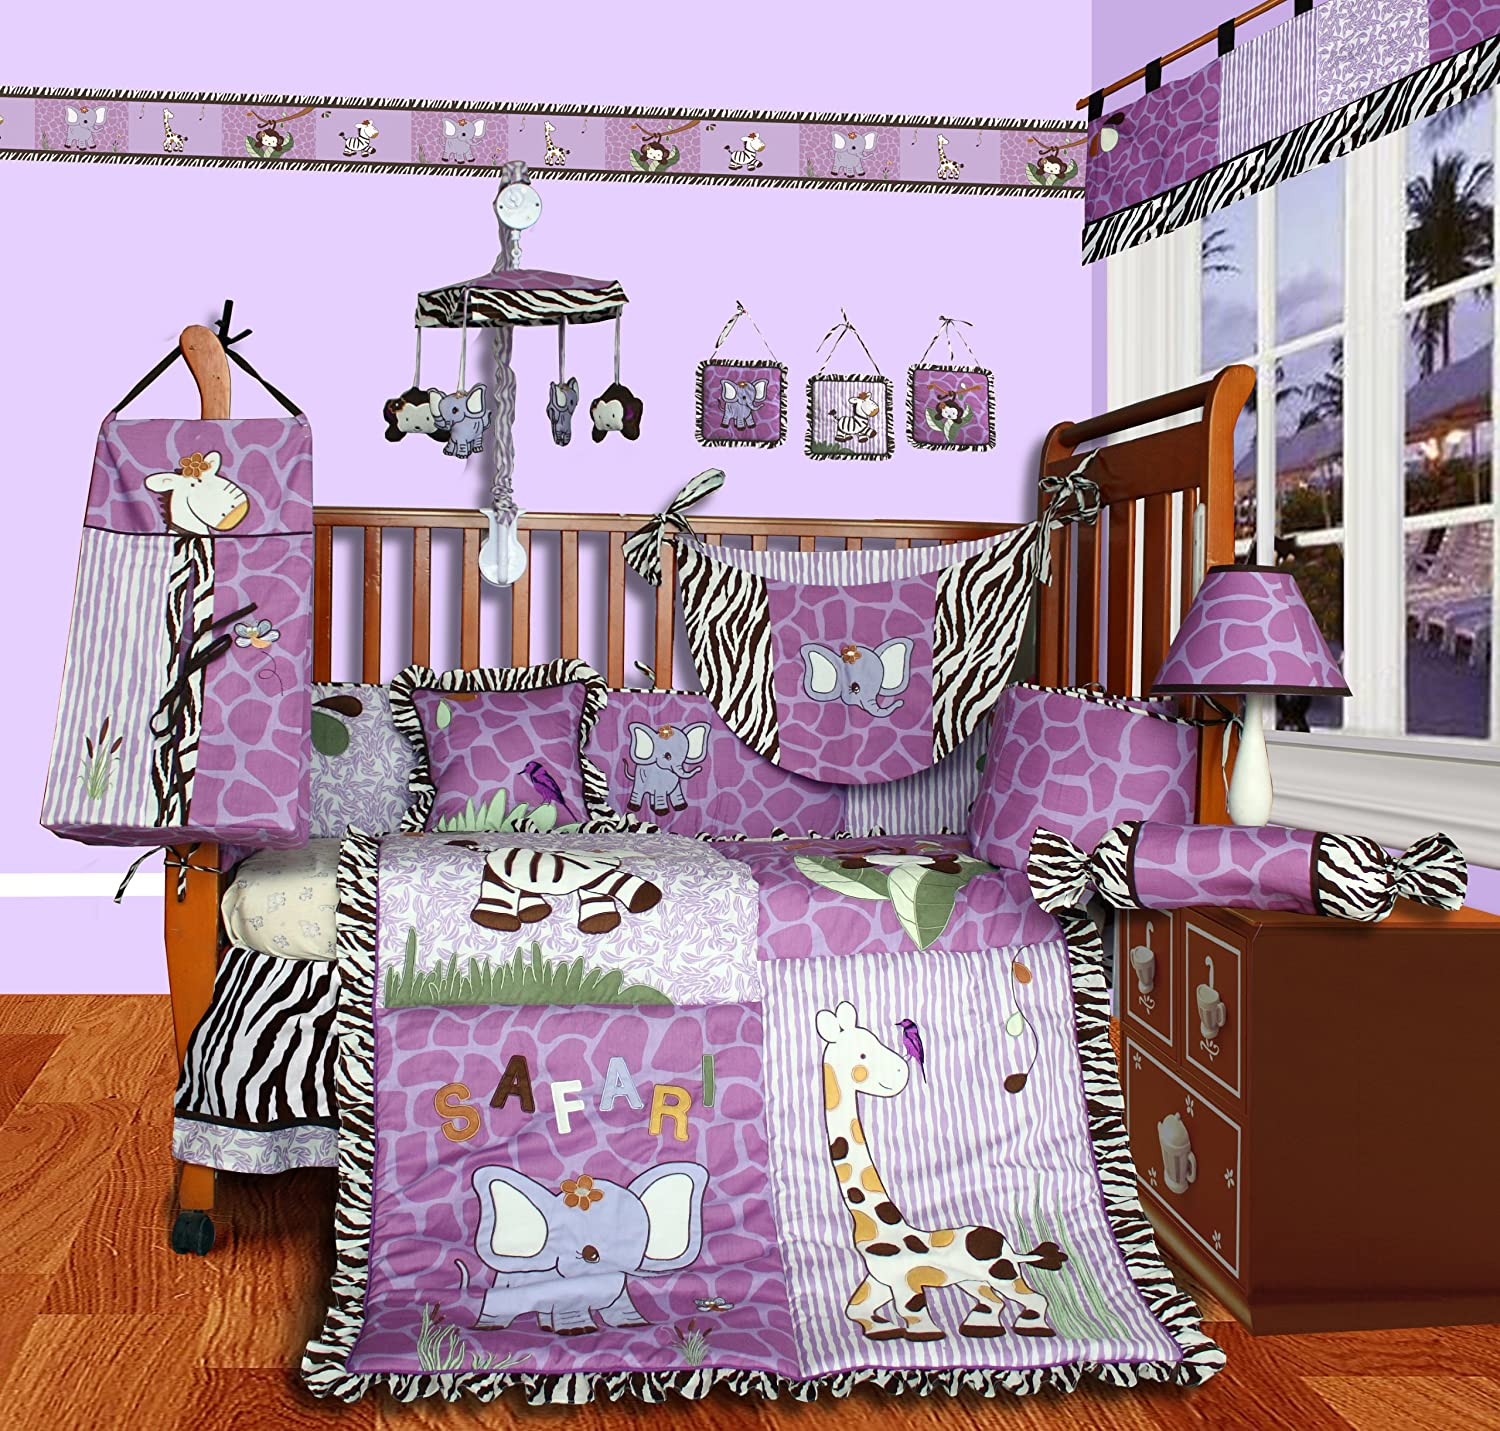 Amazon.com : SISI Baby Boutique - Safari 13 PCS Girl Crib Bedding Set : Crib  Bedding Sets : Baby - Amazon.com : SISI Baby Boutique - Safari 13 PCS Girl Crib Bedding